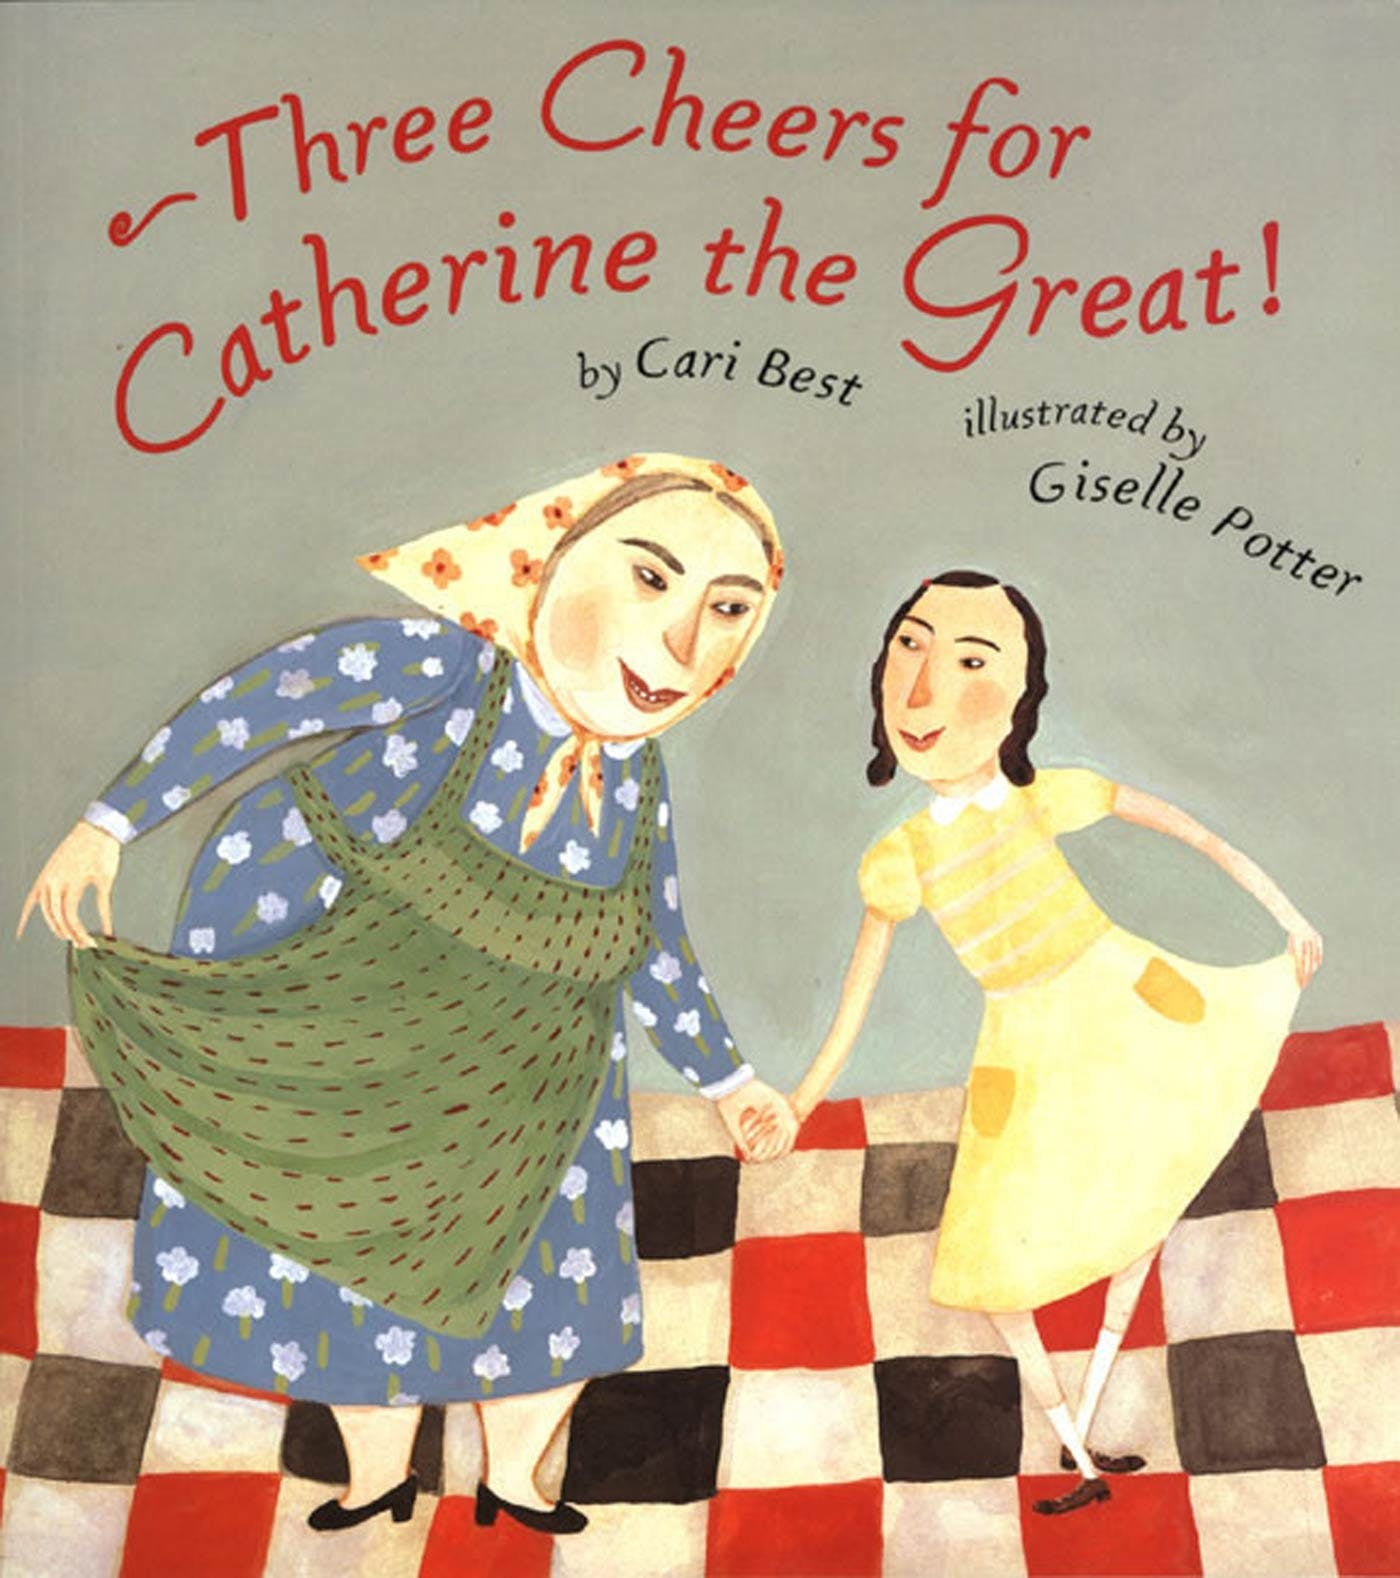 Image of Three Cheers for Catherine the Great!